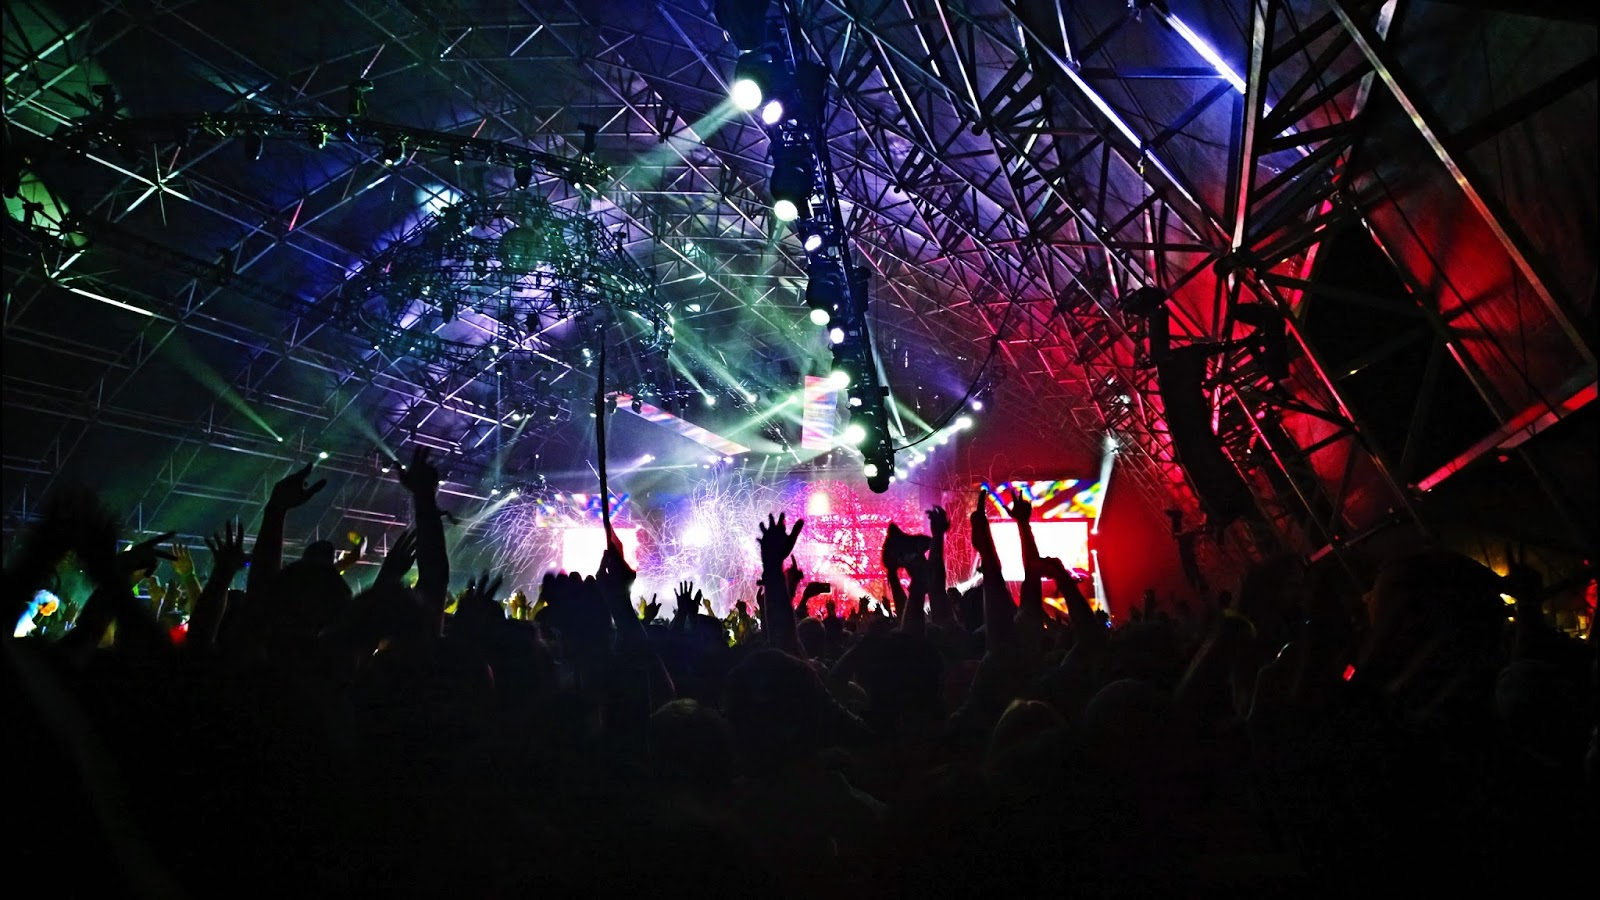 Finding the next festival headliner using Big Data